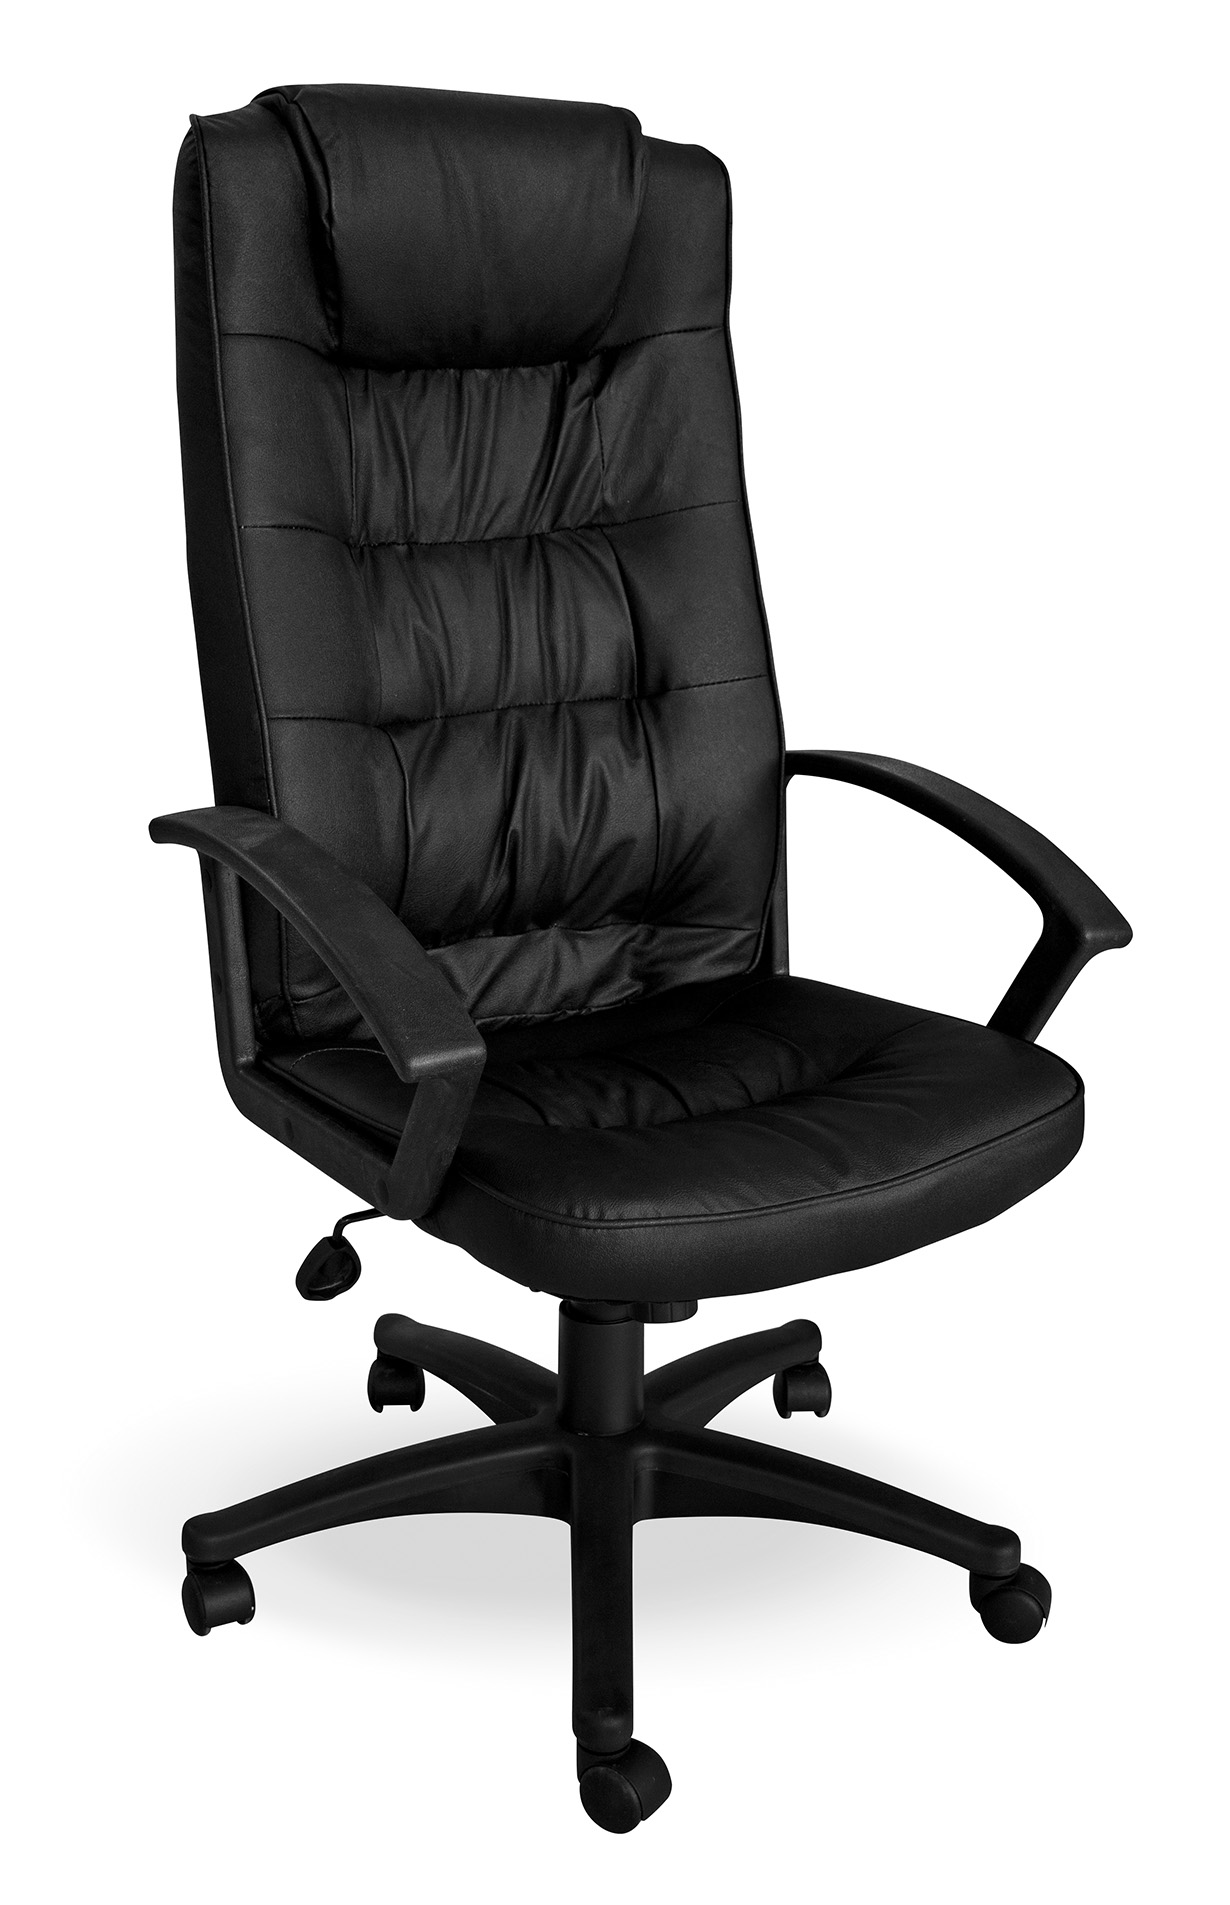 Office Chair Of Top Quality And Great Price Available In